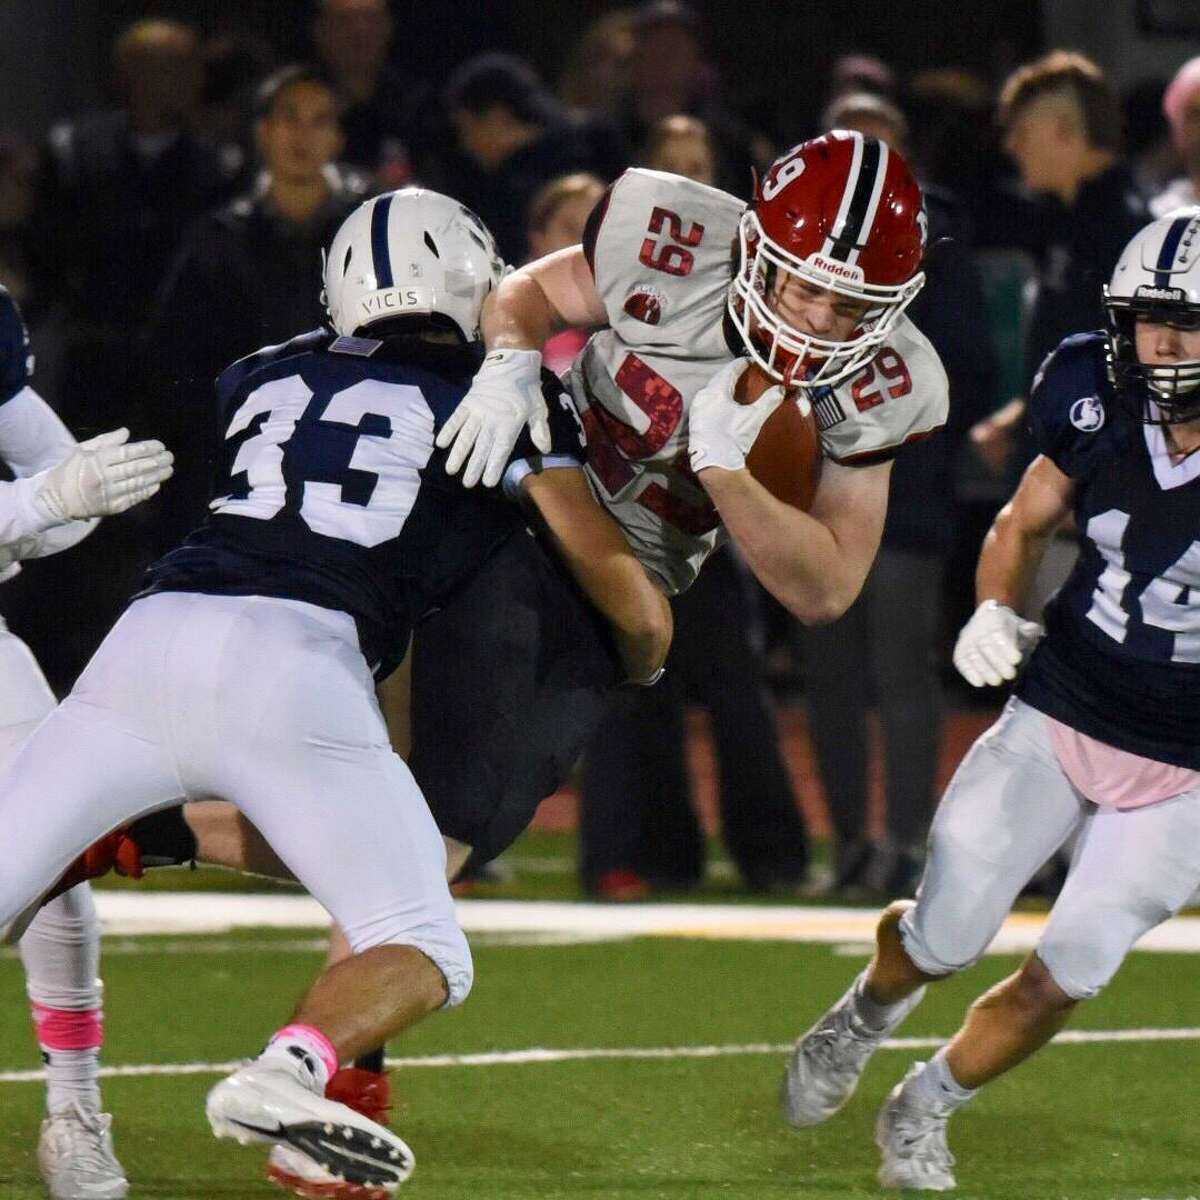 New Canaan's John Wise (29) is tackled by Staples' Nicholas Prior (33) during a football game at Staples High School on Friday, Oct. 25, 2019.